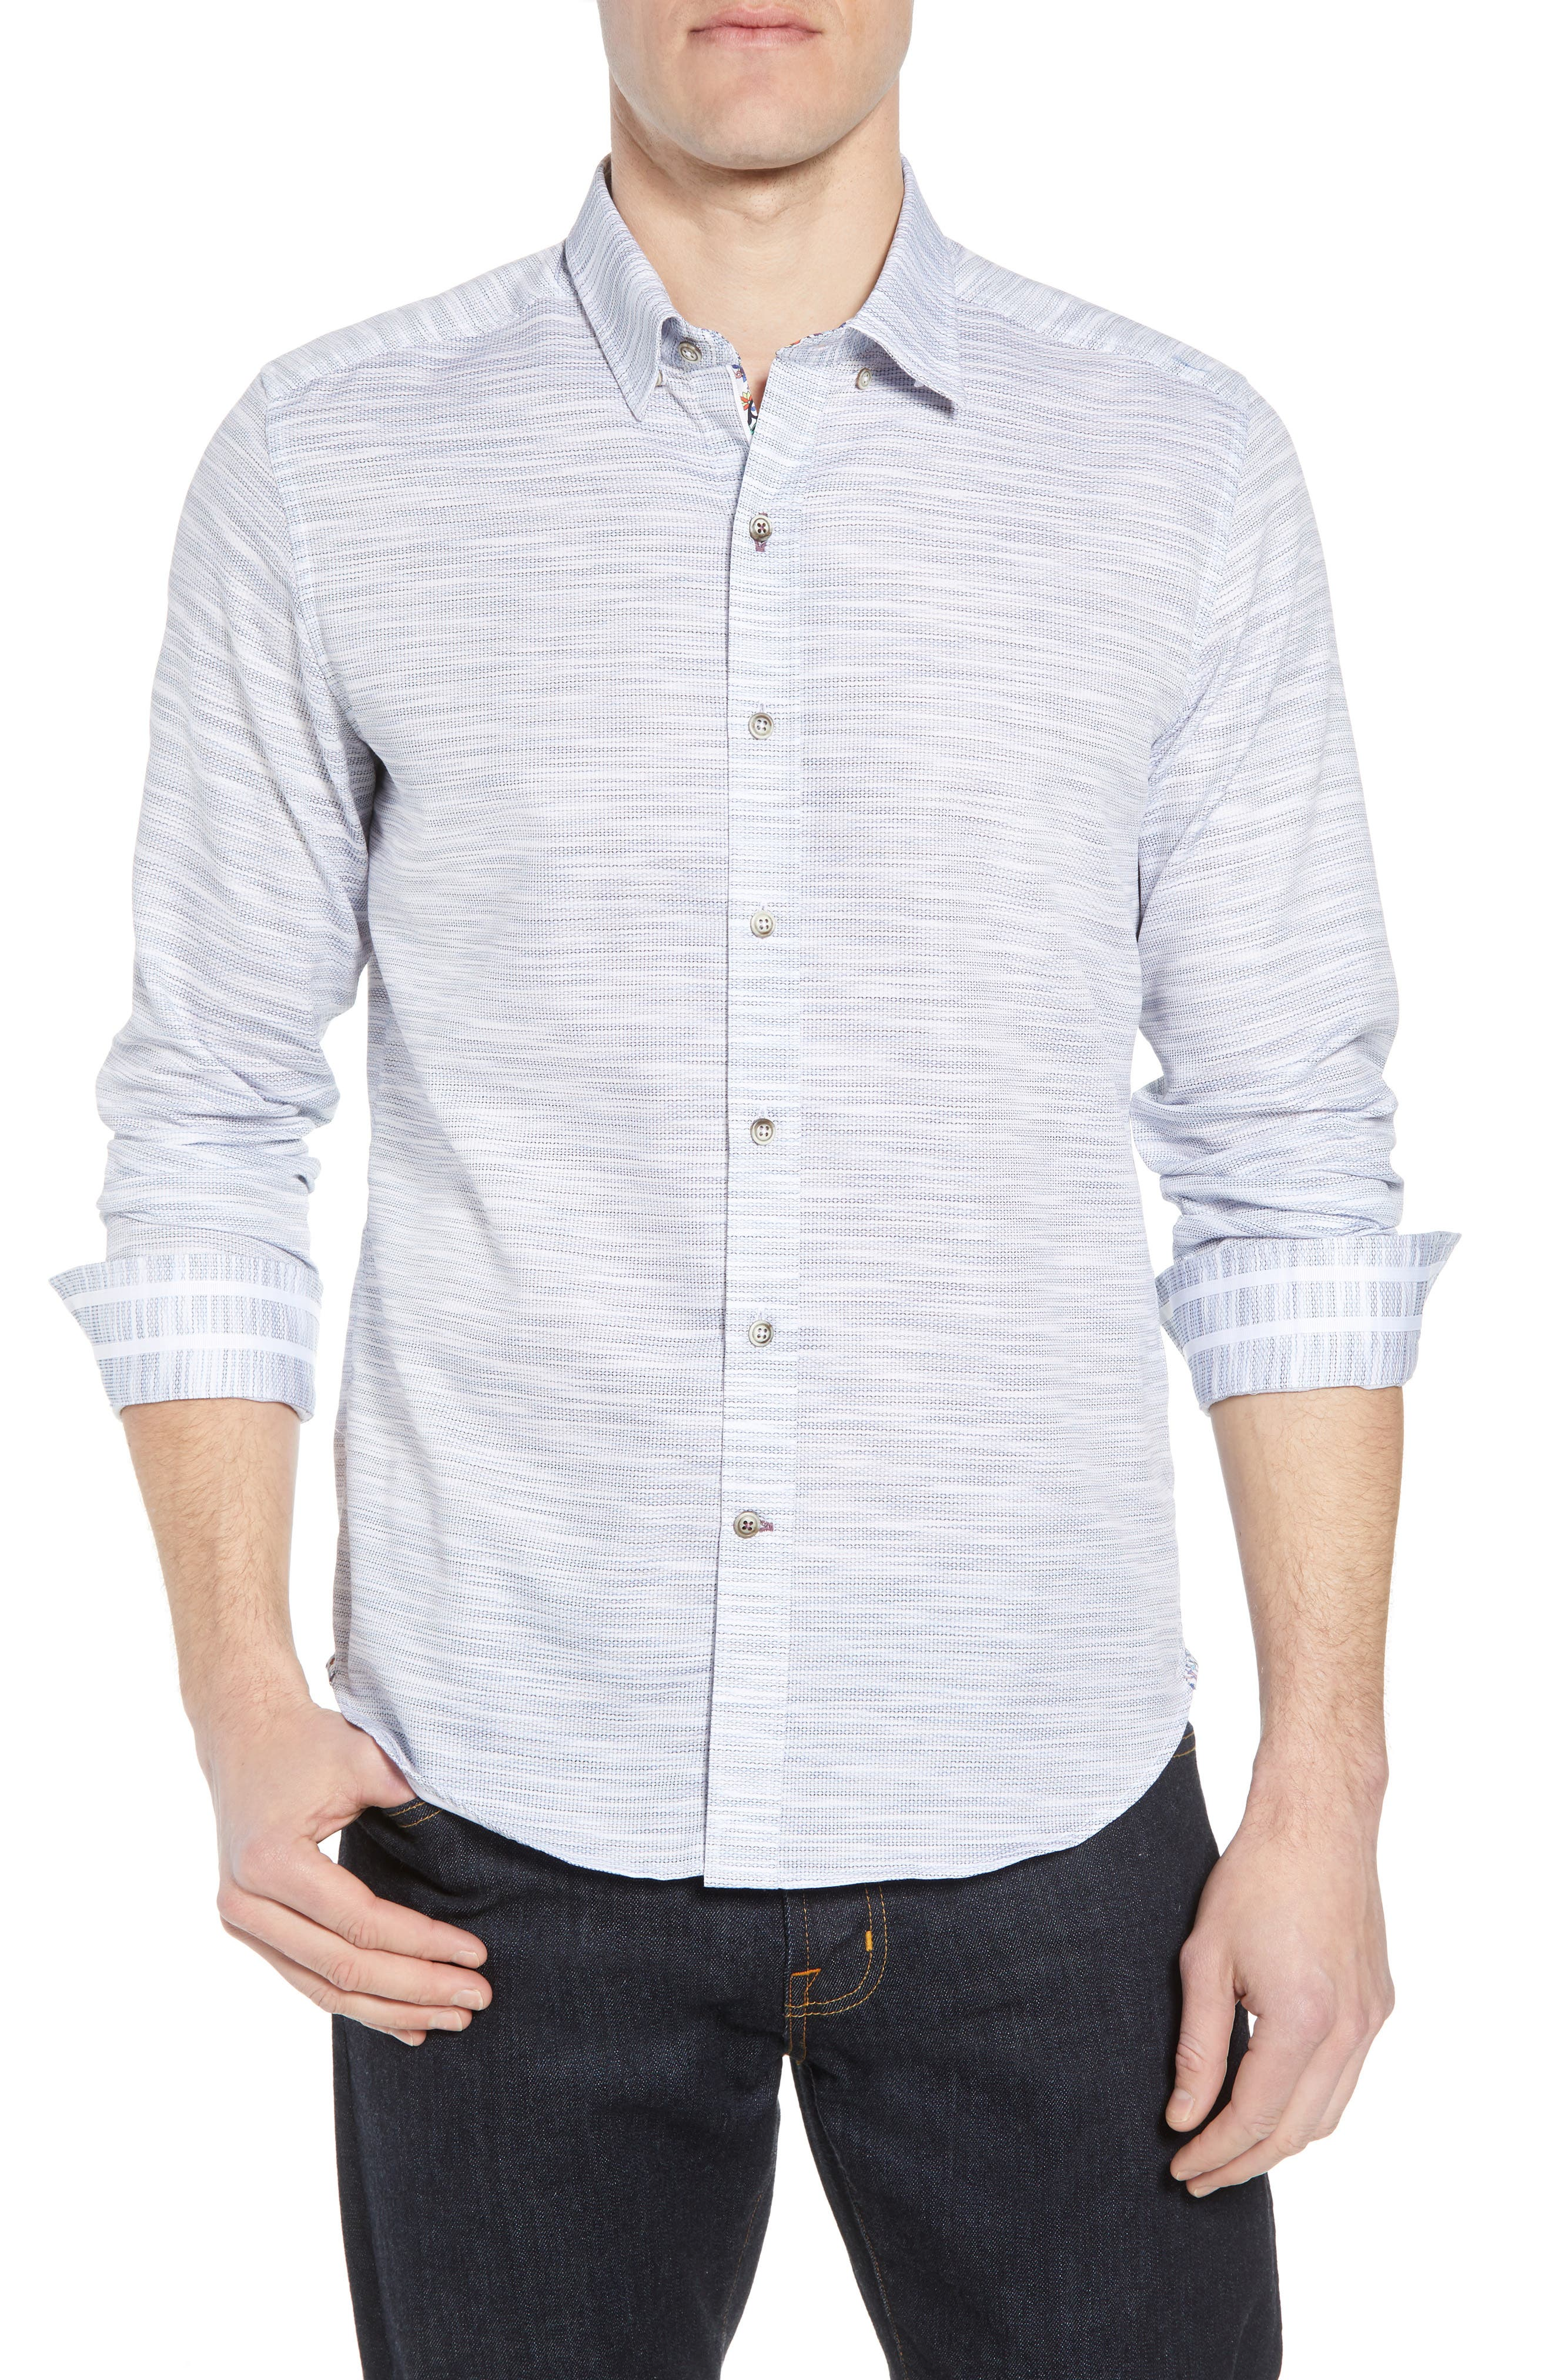 Tully Tailored Fit Sport Shirt,                         Main,                         color, WHITE